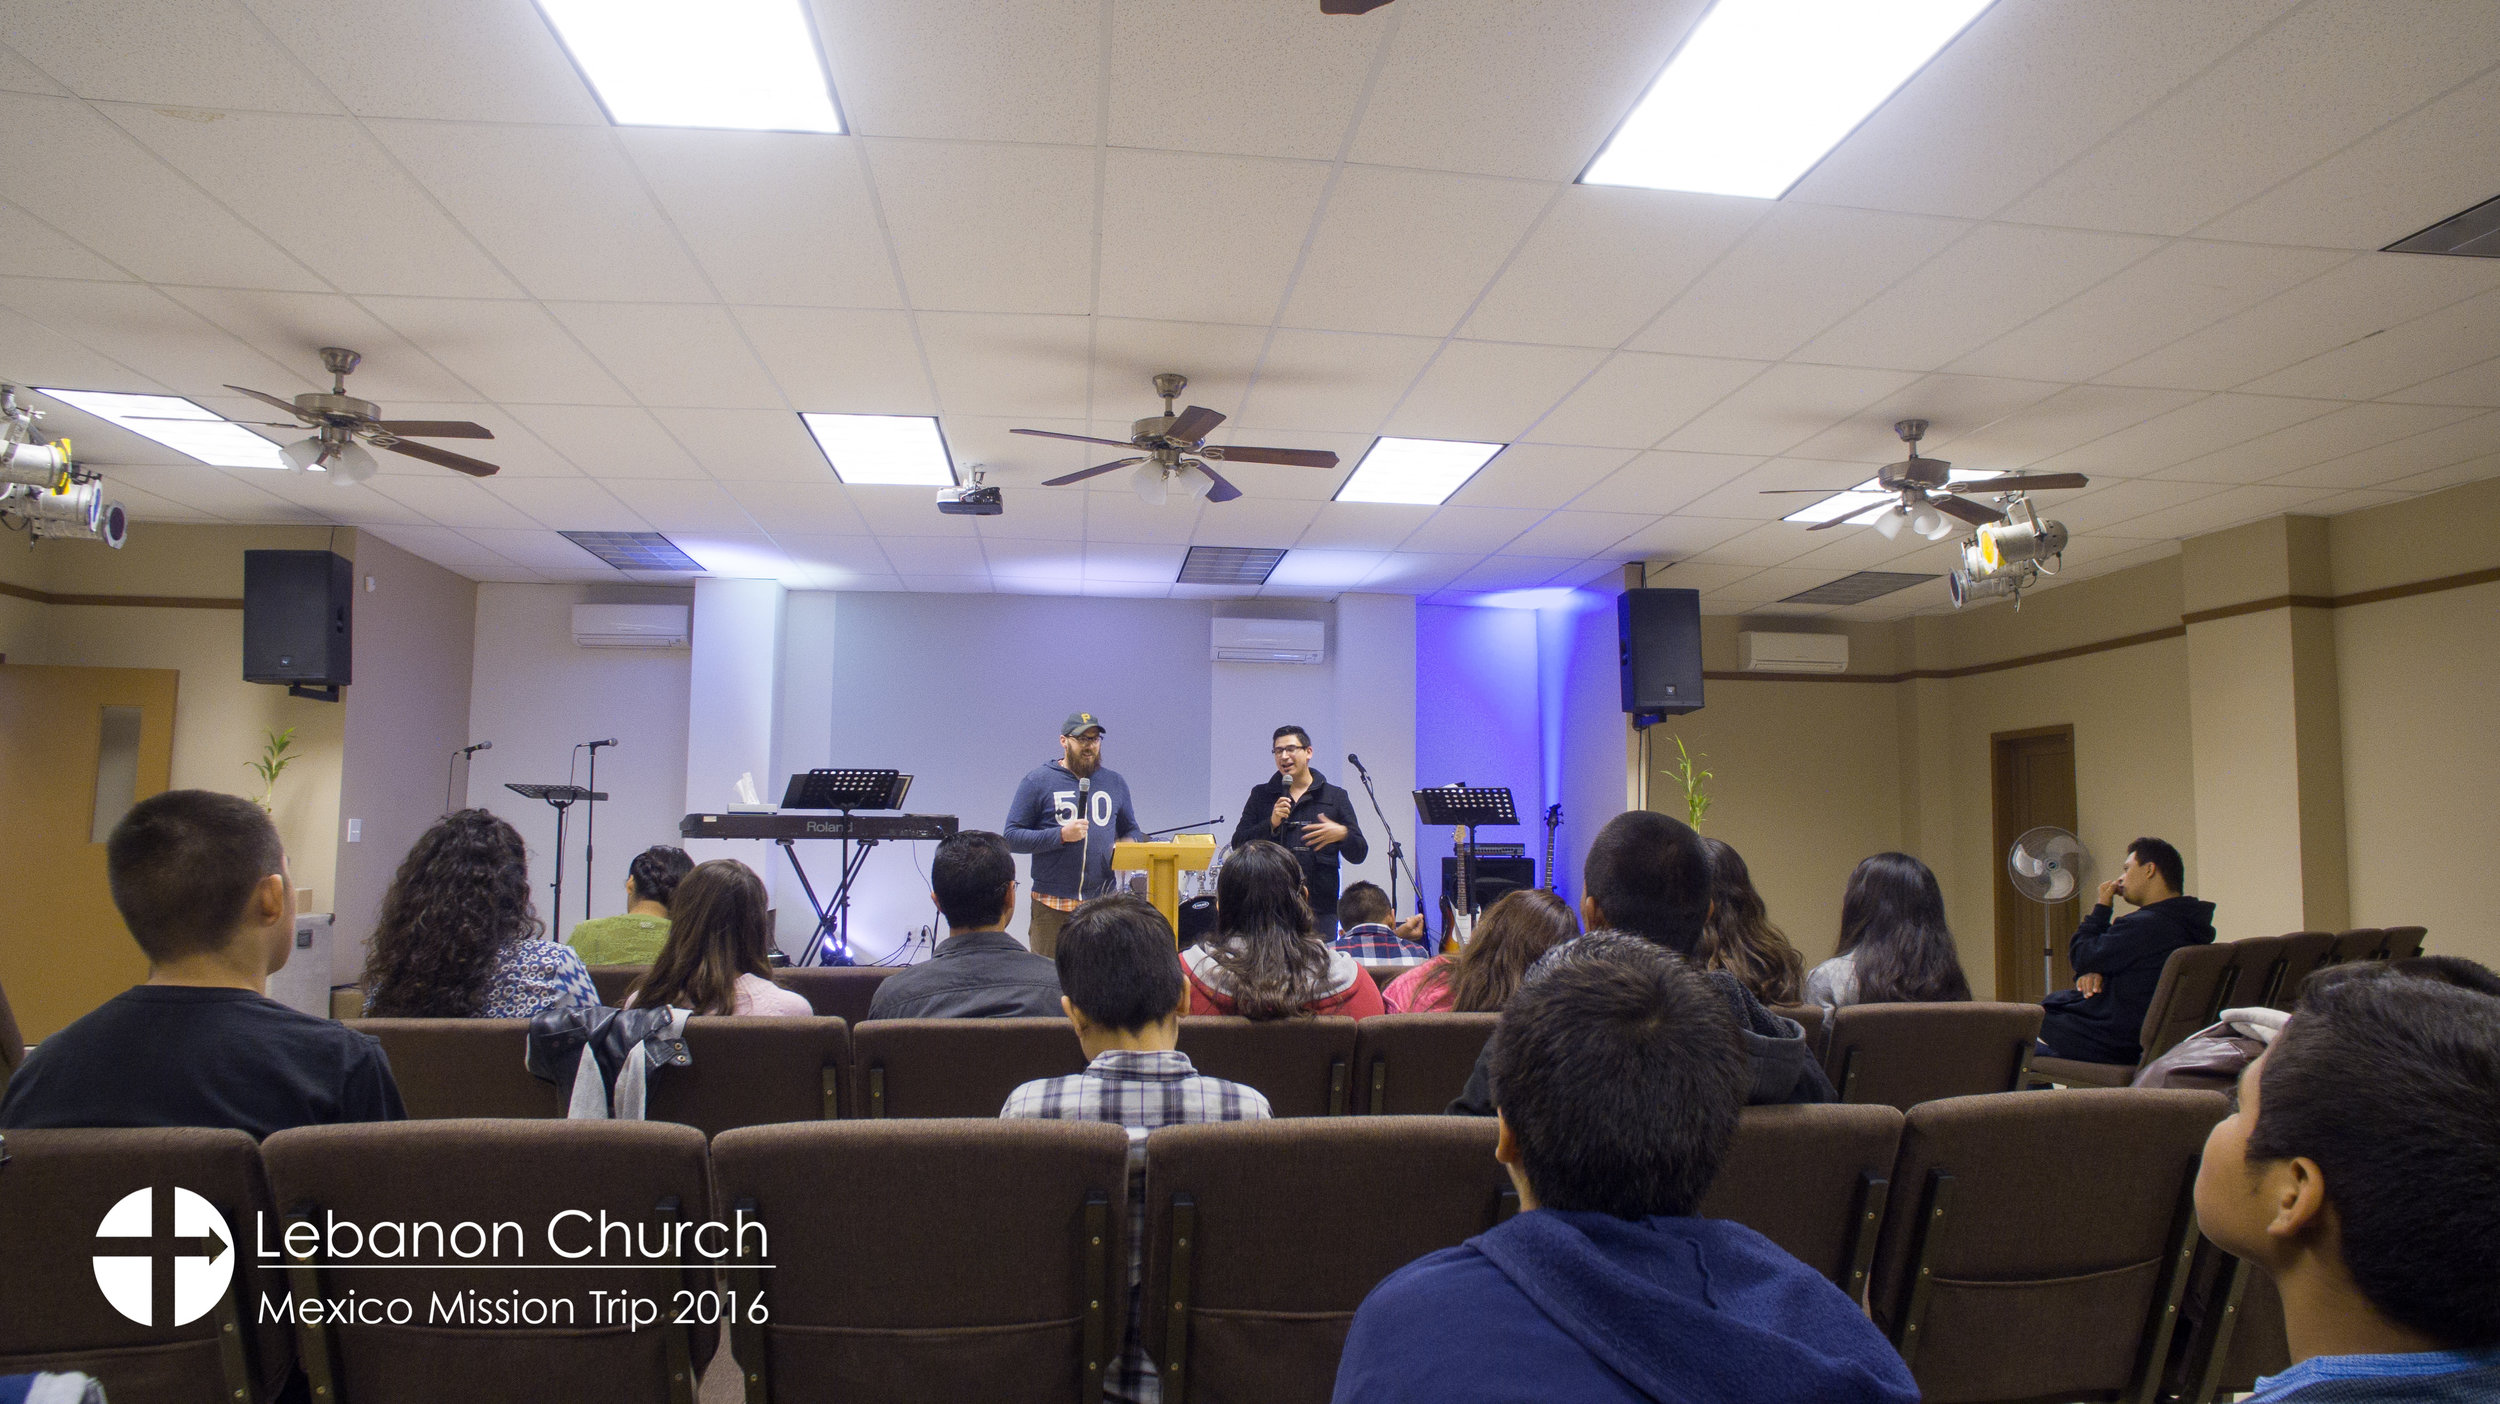 Zack preaching at the youth program